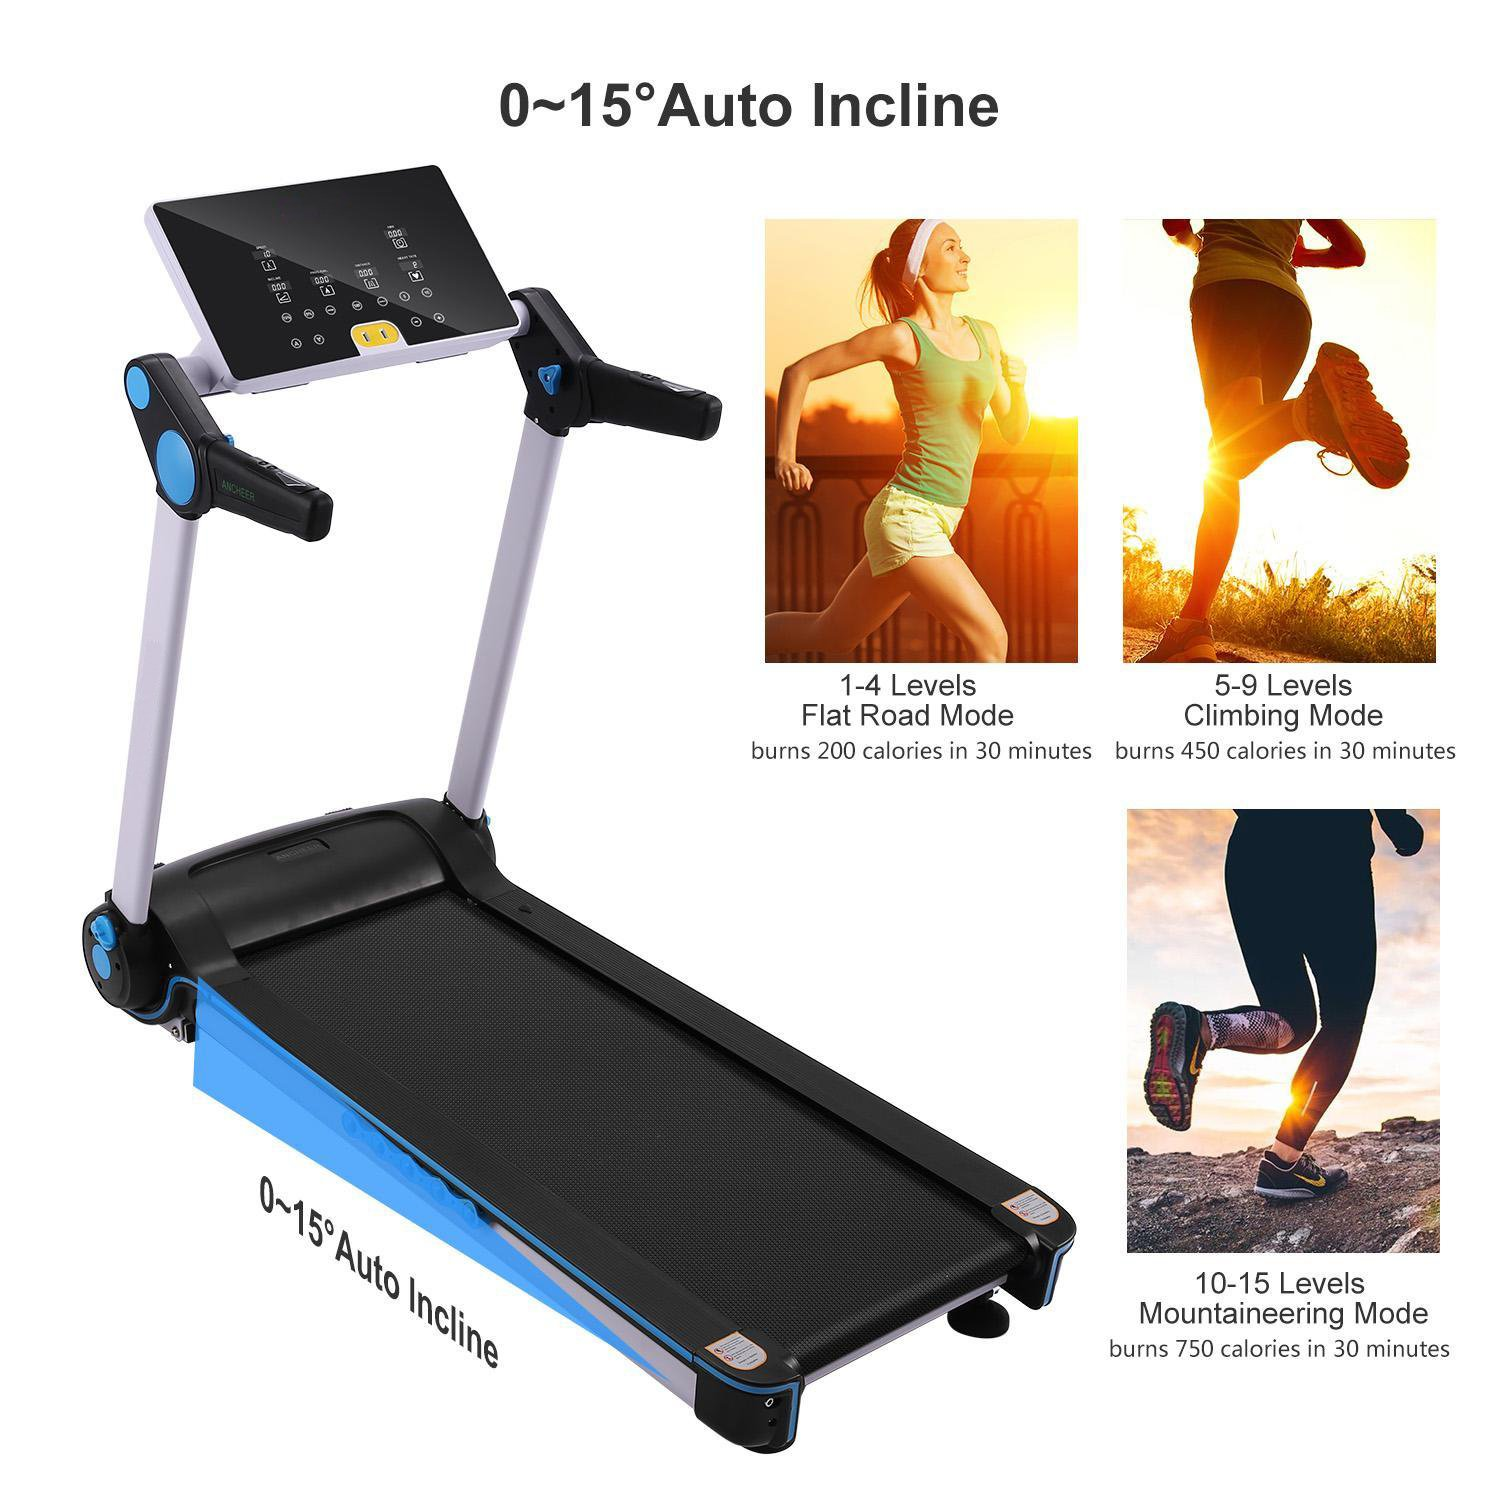 Garain S6400 Folding Electric Treadmill, Bluetooth App Control Touch Screen Exercise Equipment Walking Running Machine Home Fitness Treadmills (US STOCK) by Garain (Image #3)